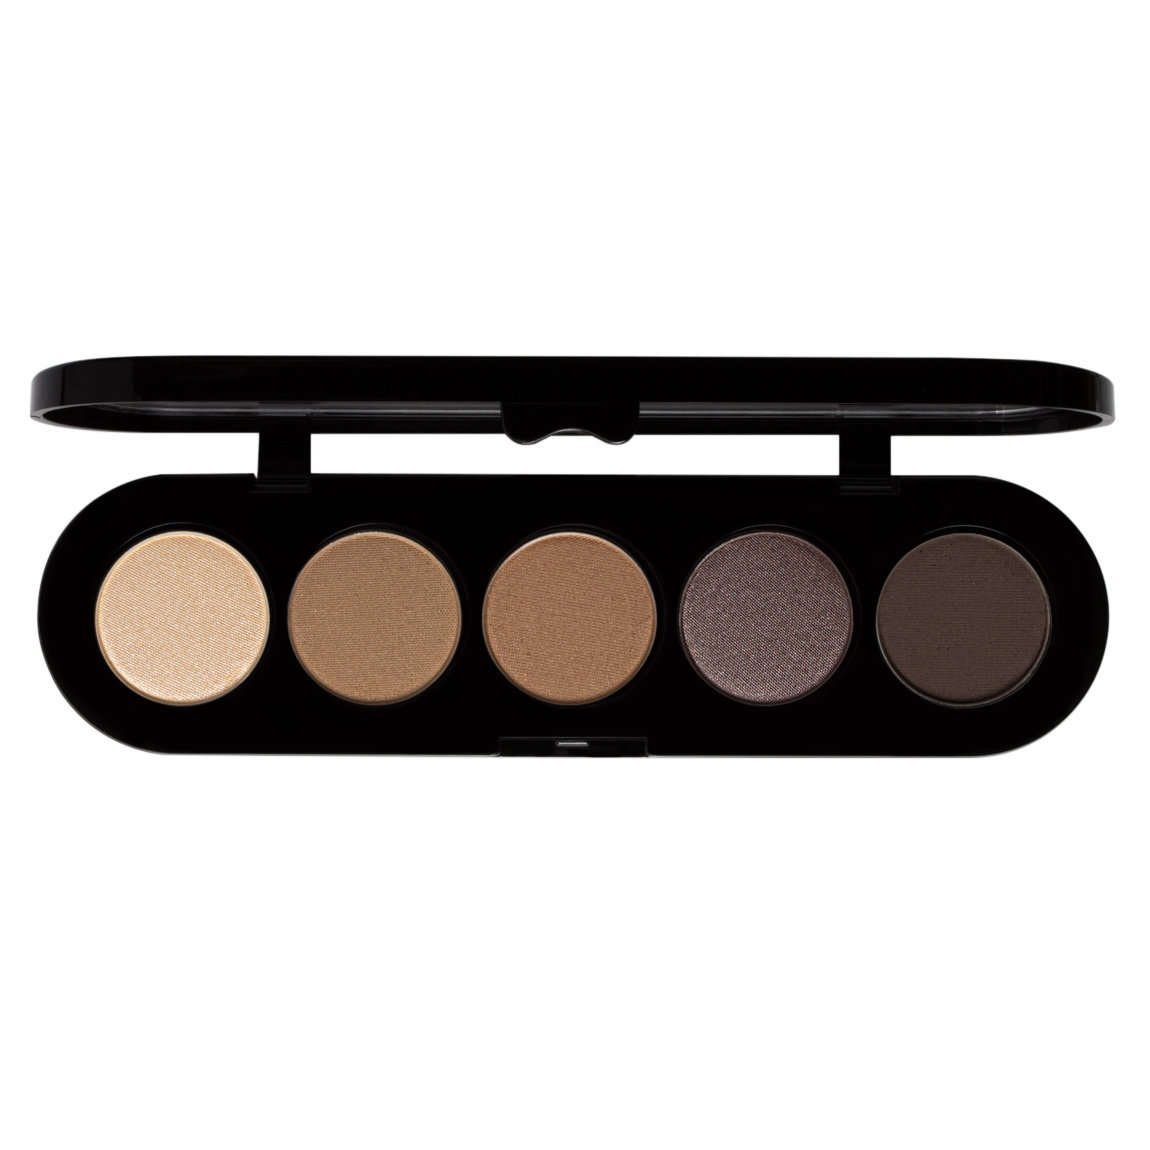 Make-Up Atelier Palette Eye Shadows T26 Smokey Brown product smear.